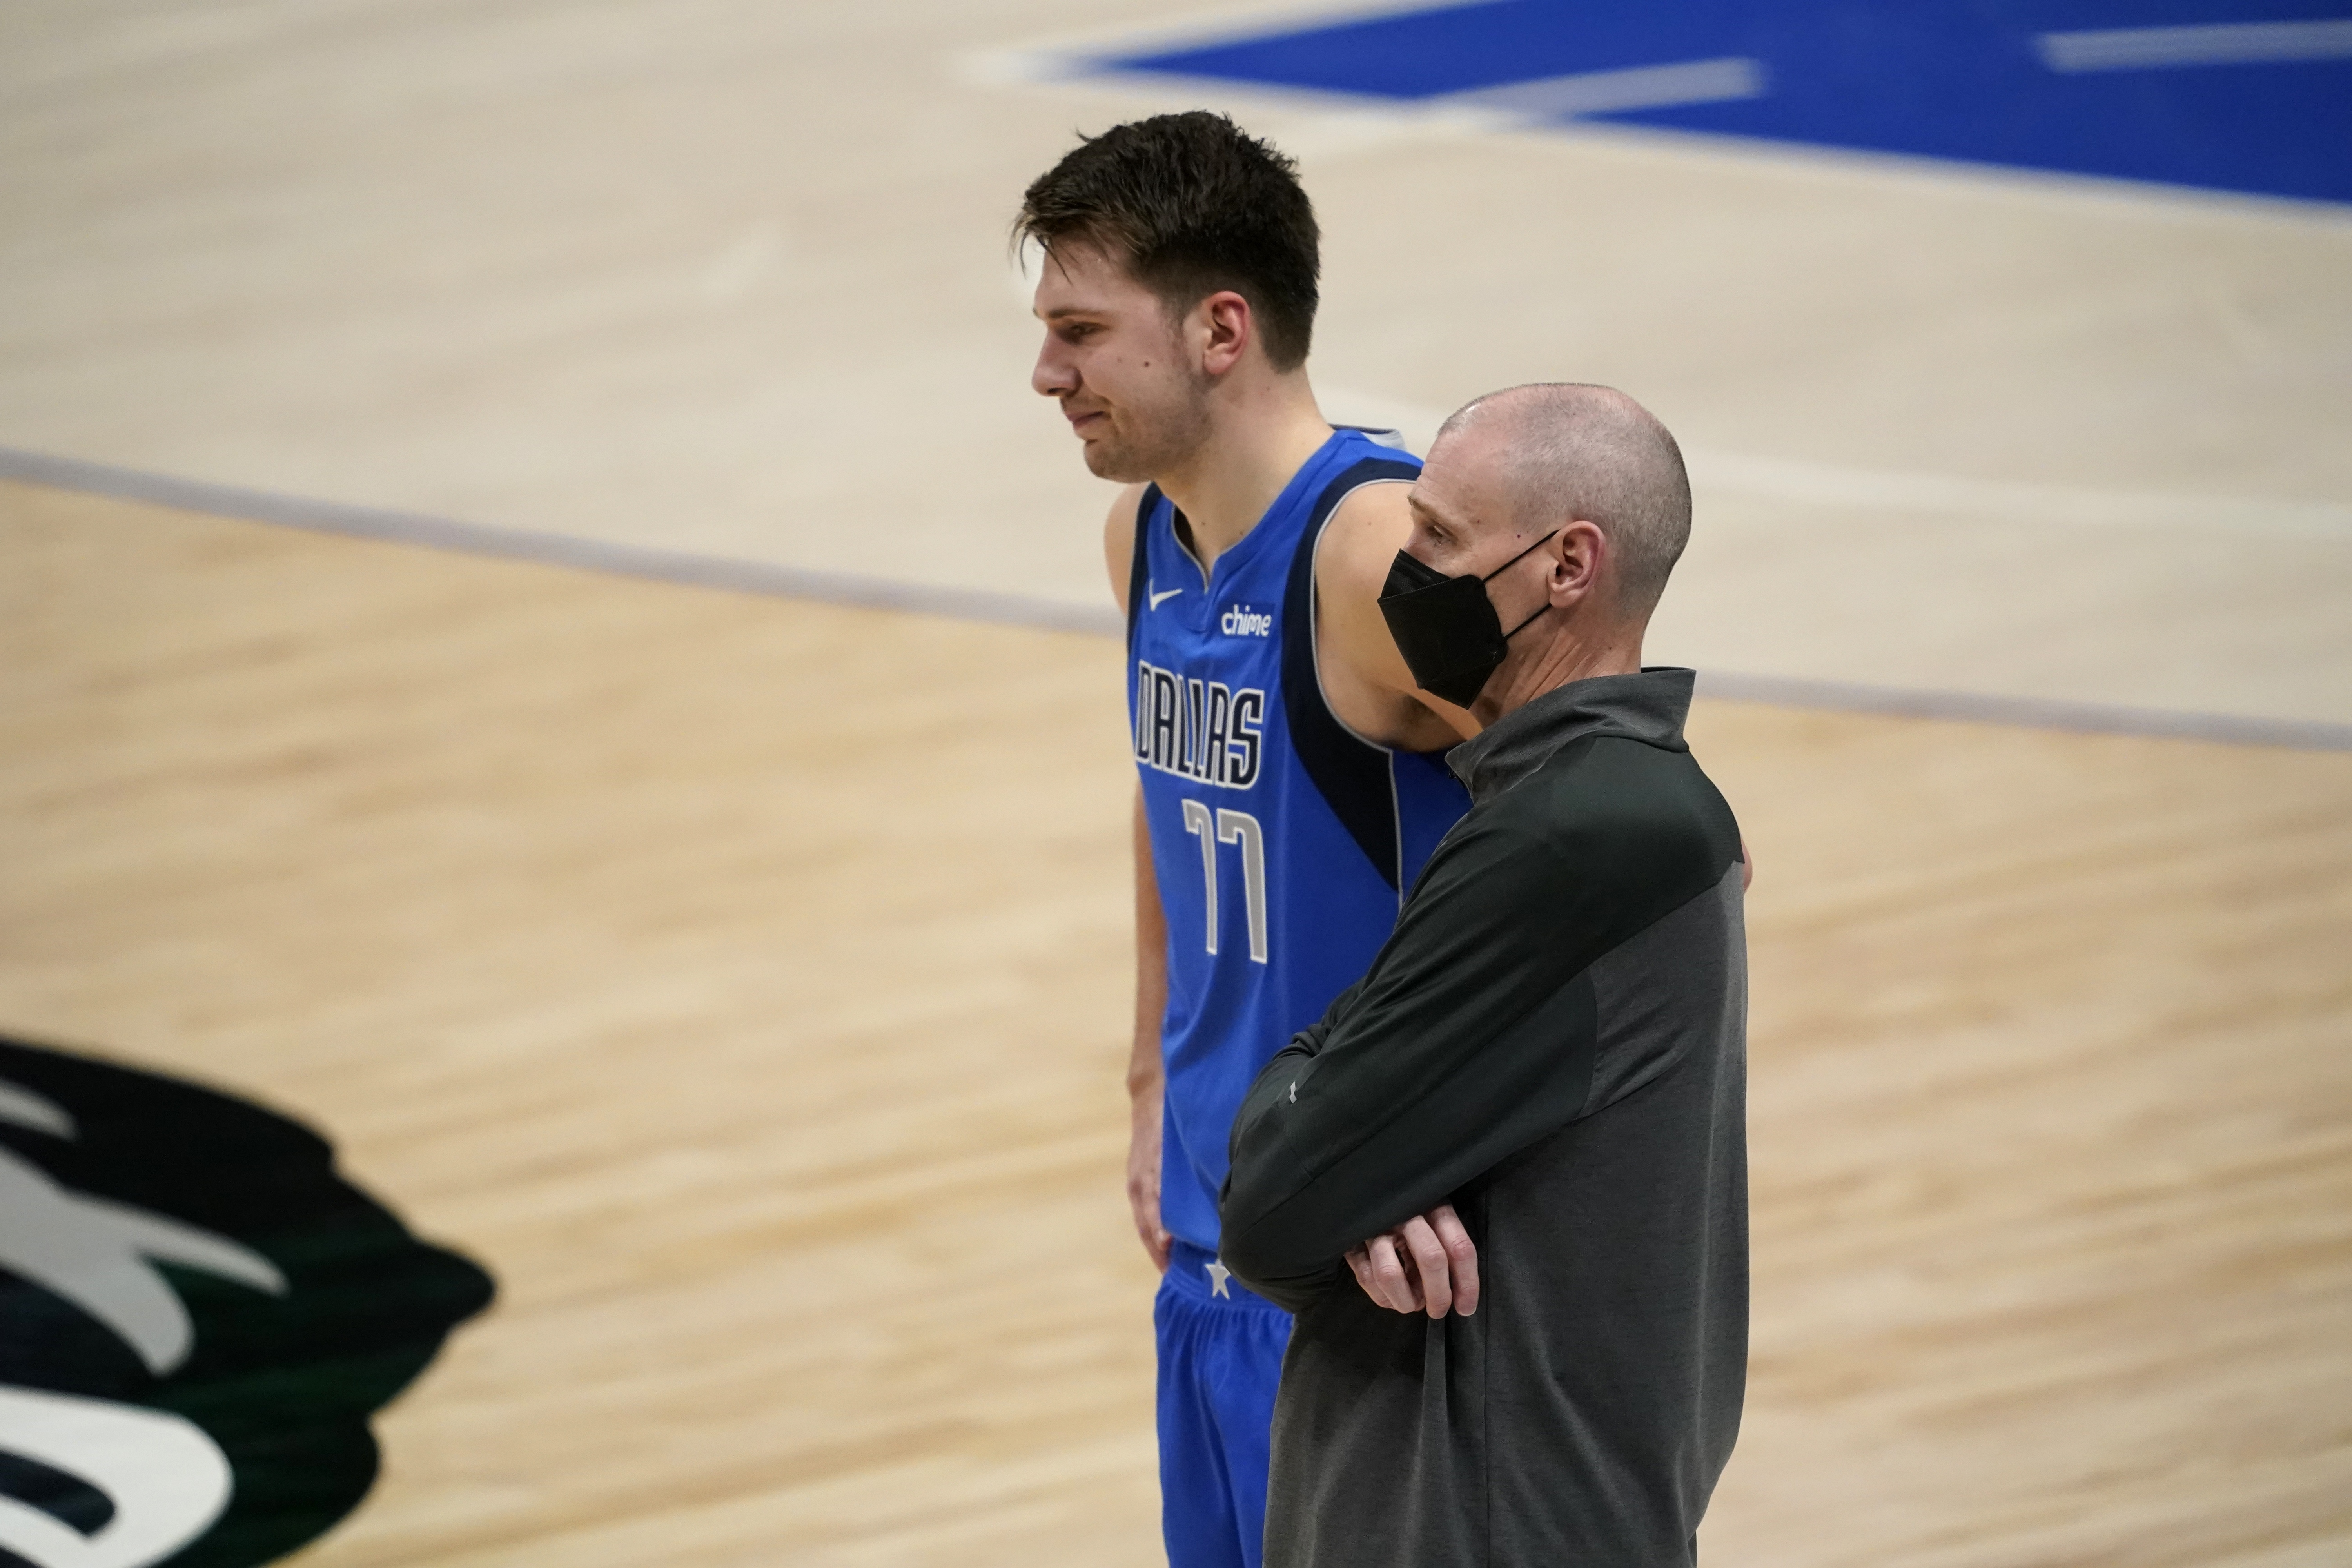 Rick Carlisle (right) stepped down after 13 years coaching the Mavericks, a job opening made tantalizing by star guard Luka Doncic (left).